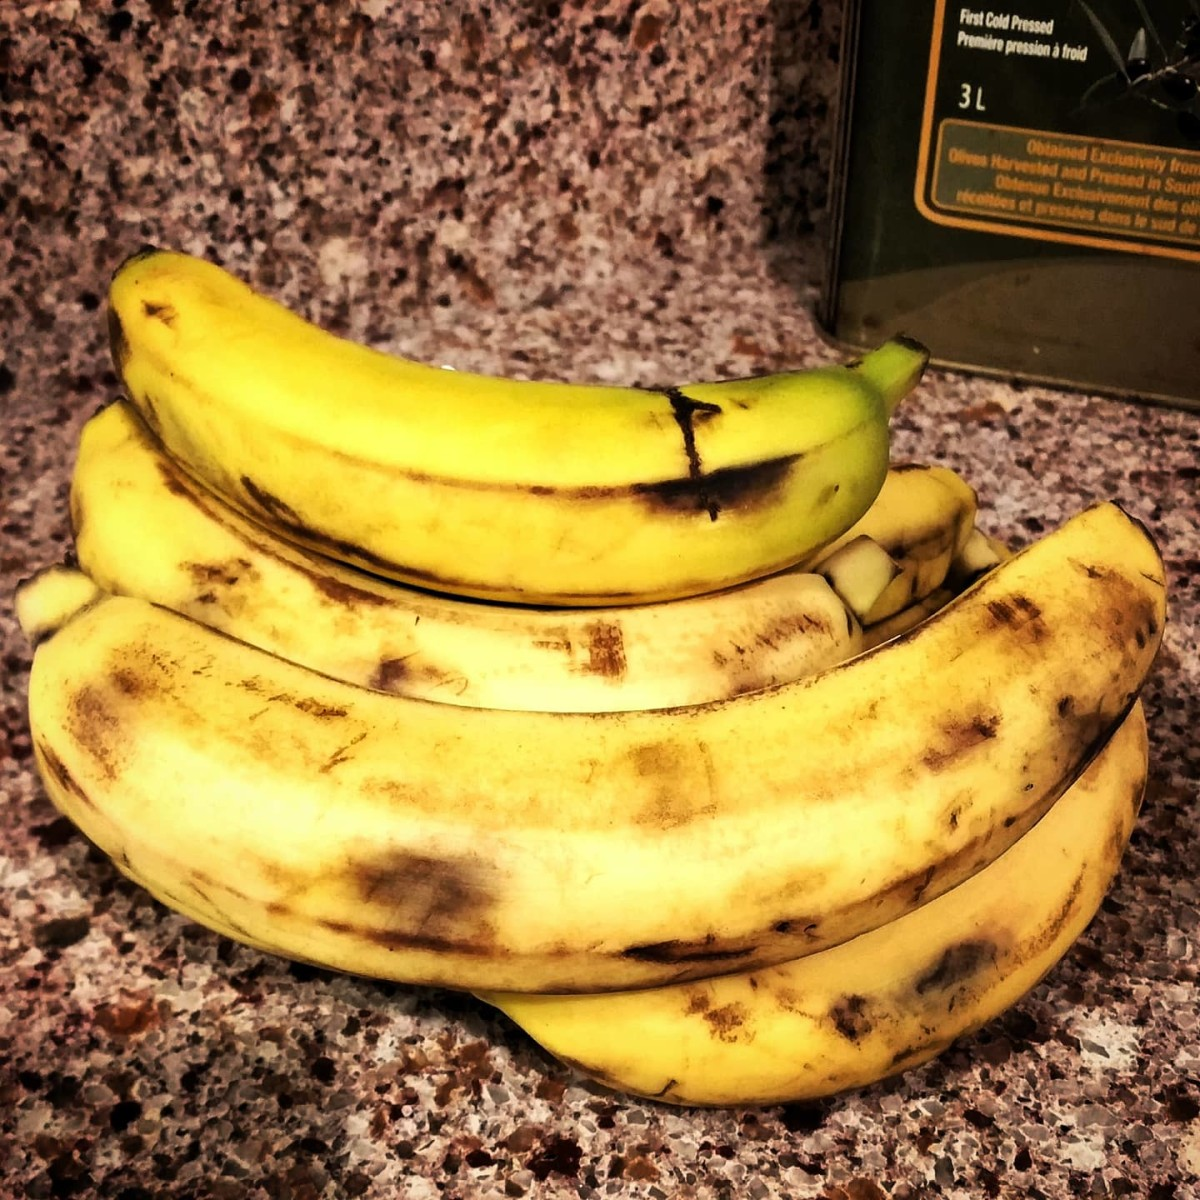 You can't go wrong having extra bananas on hand. Store them in the freezer until you need bananas for a recipe. Sometimes you can even by a bunch of bruised bananas at a discount.